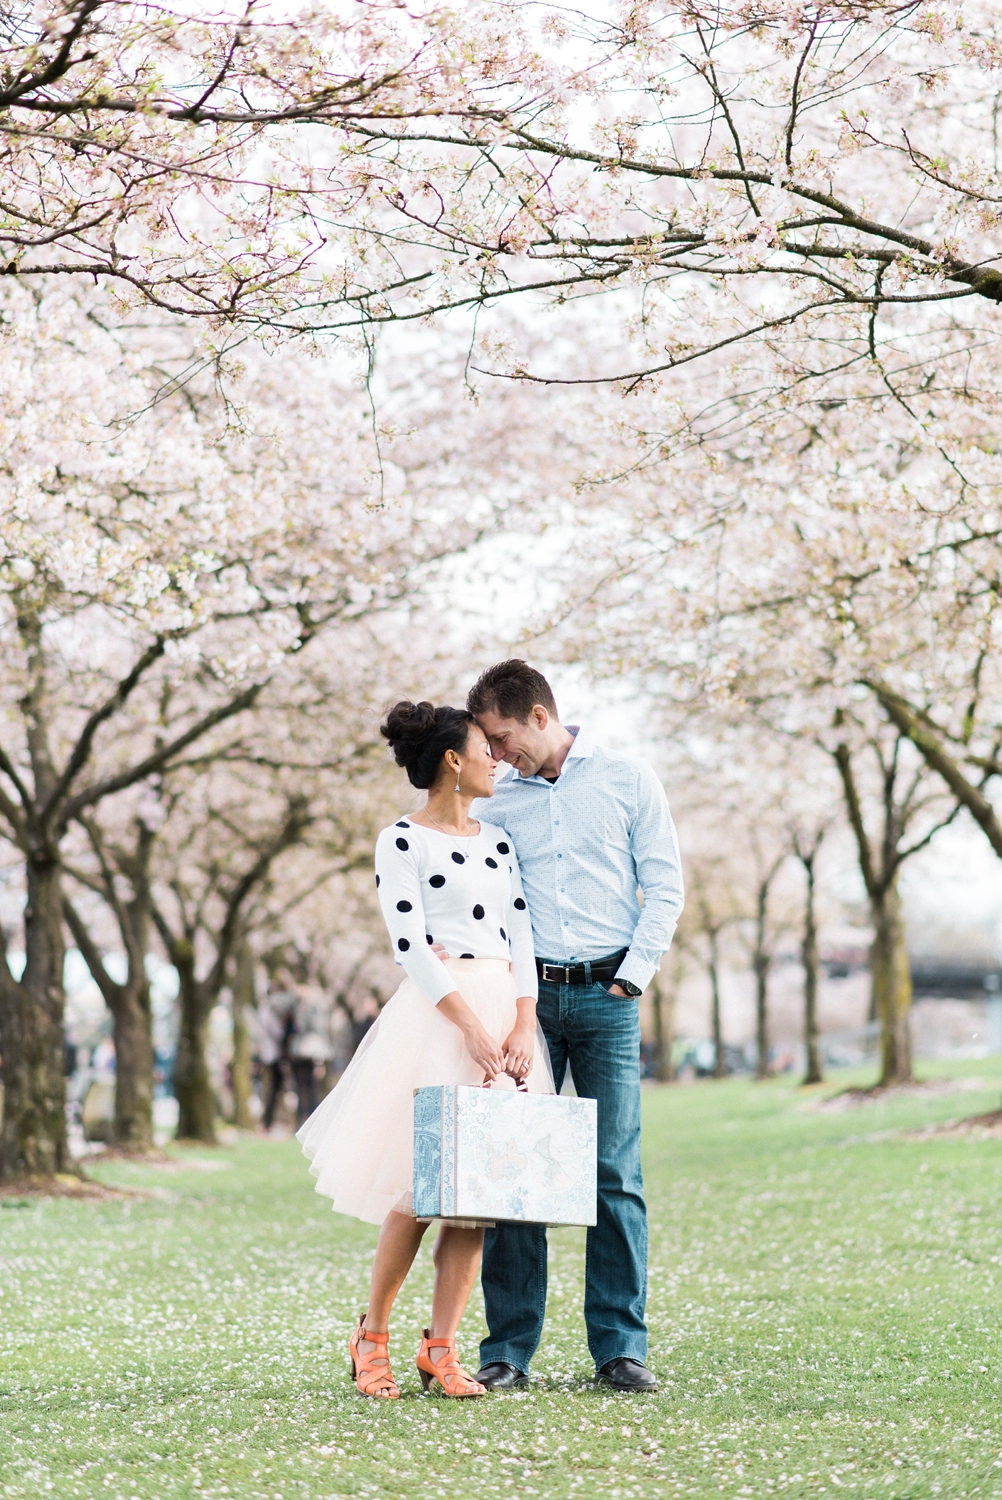 portland-waterfront-engagement-cherry-blossom-cathedral-park-sokhorn-jay-109_cr.jpg